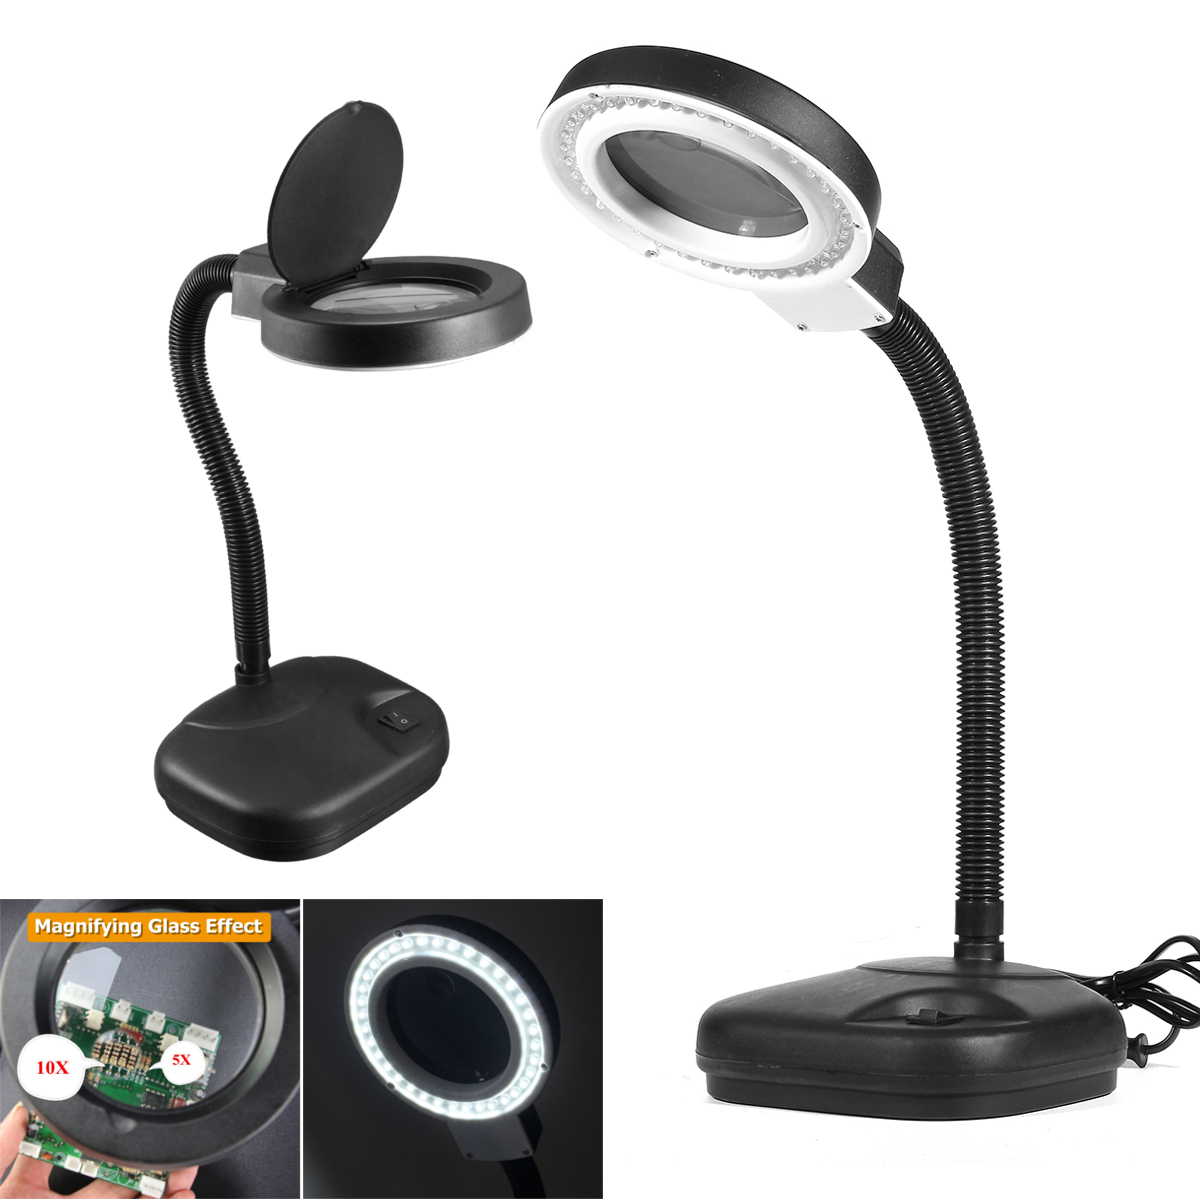 LED Desk Magnifier Lamp Light Crafts Glass Lens 5X 10X Magnifying Desktop Loupe Repair Tools 40 LEDs Stand Daylight Table Lamp crafts glass lens led desk magnifier lamp light 10x magnifying desktop loupe repair tools with usb free shipping